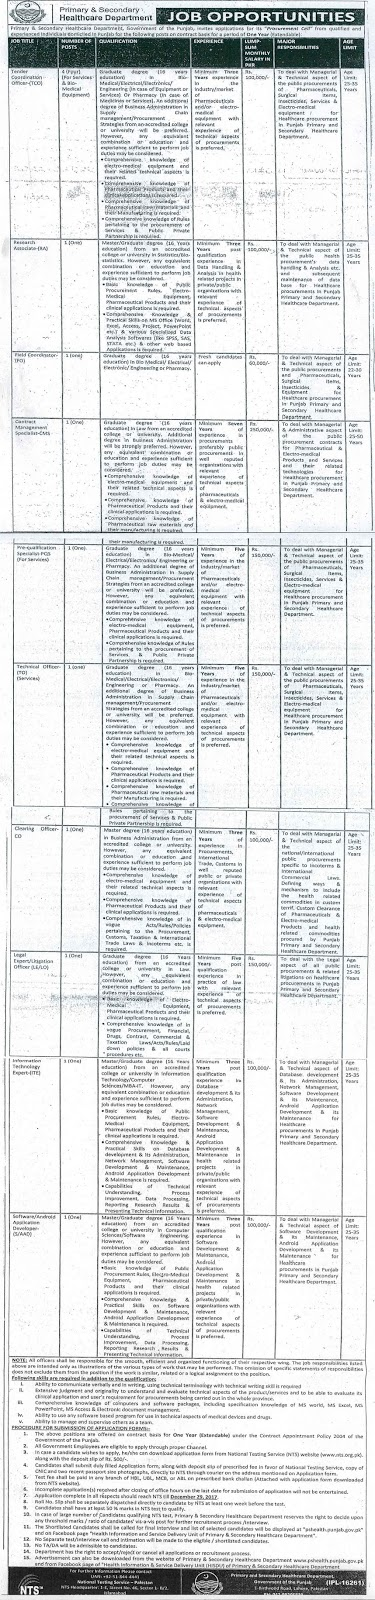 Jobs In Primary And Secondary Healthcare Department Punjab Dec 2017